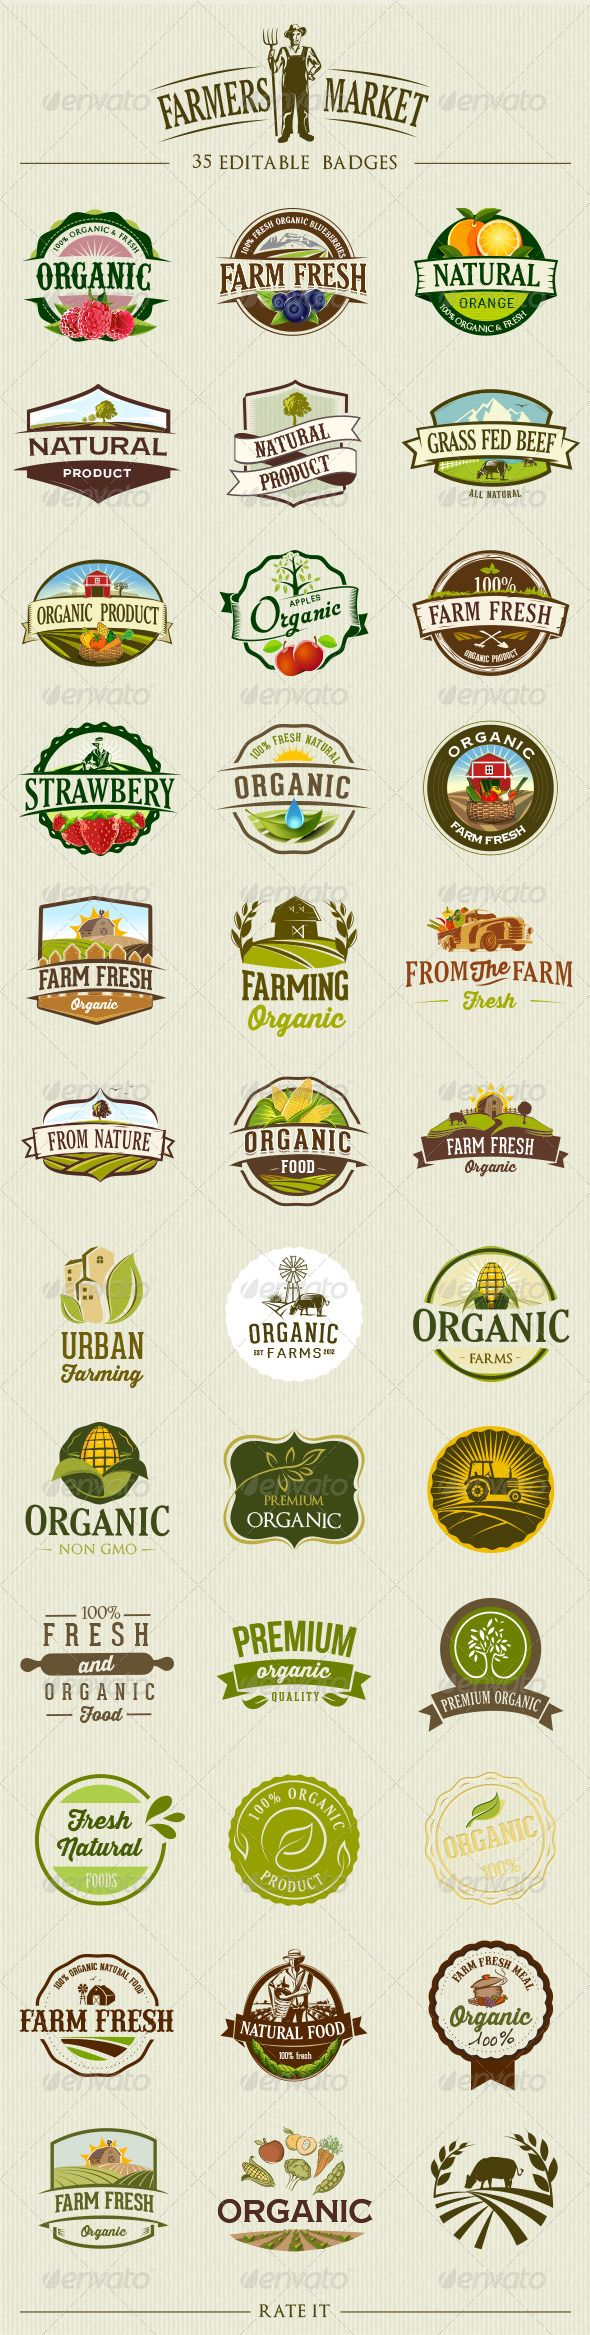 35 Organic Food Labels and Badges Vector Template #design Download: http://graphicriver.net/item/35-organic-food-labels-and-badges/8166879?ref=ksioks